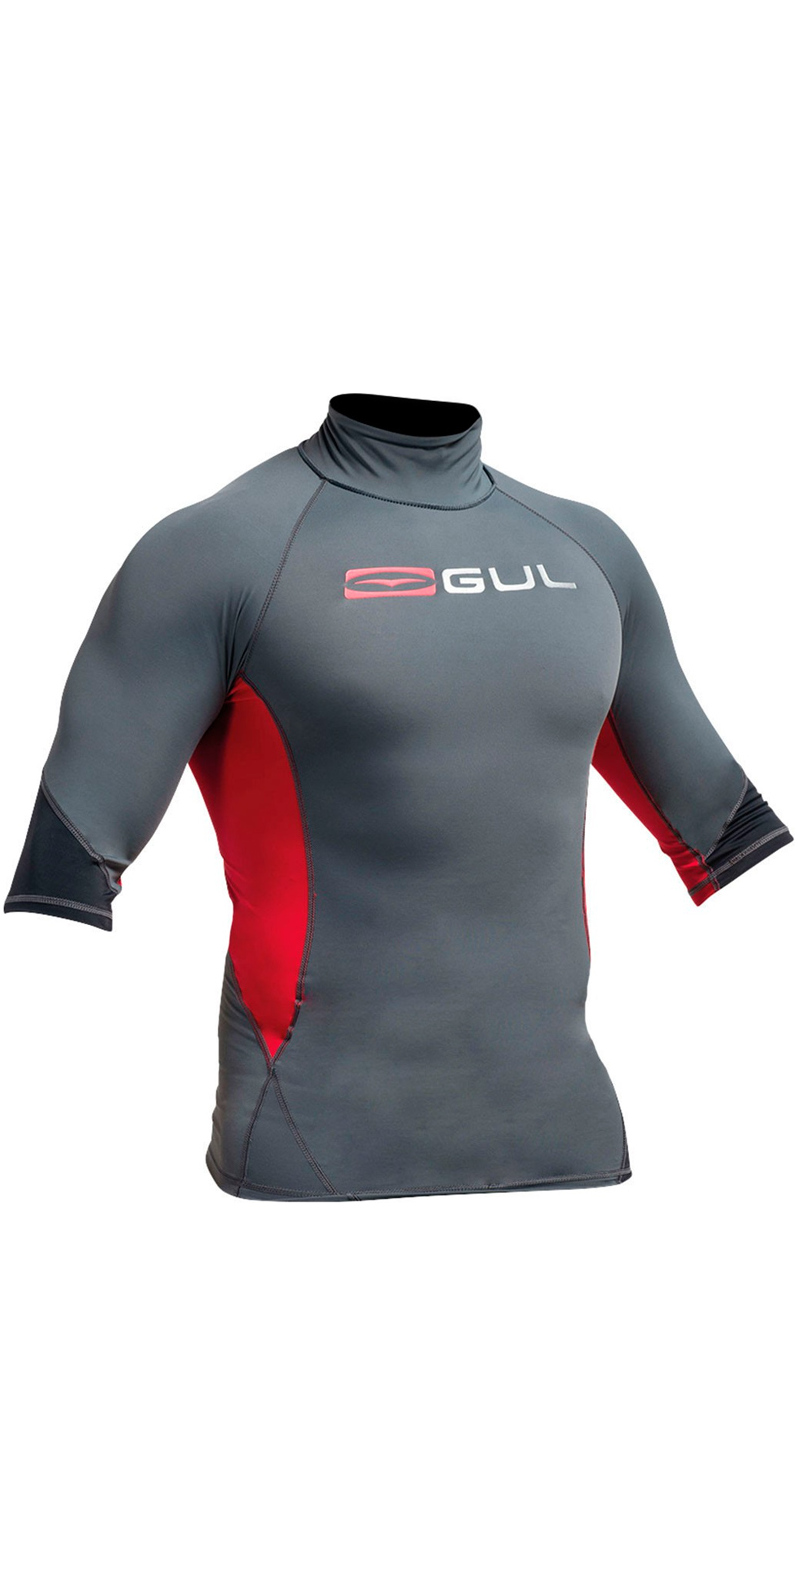 Gul 2019 Mens Xola Rash Vest Guard Short Sleeve Wetsuit Top UV Red Black